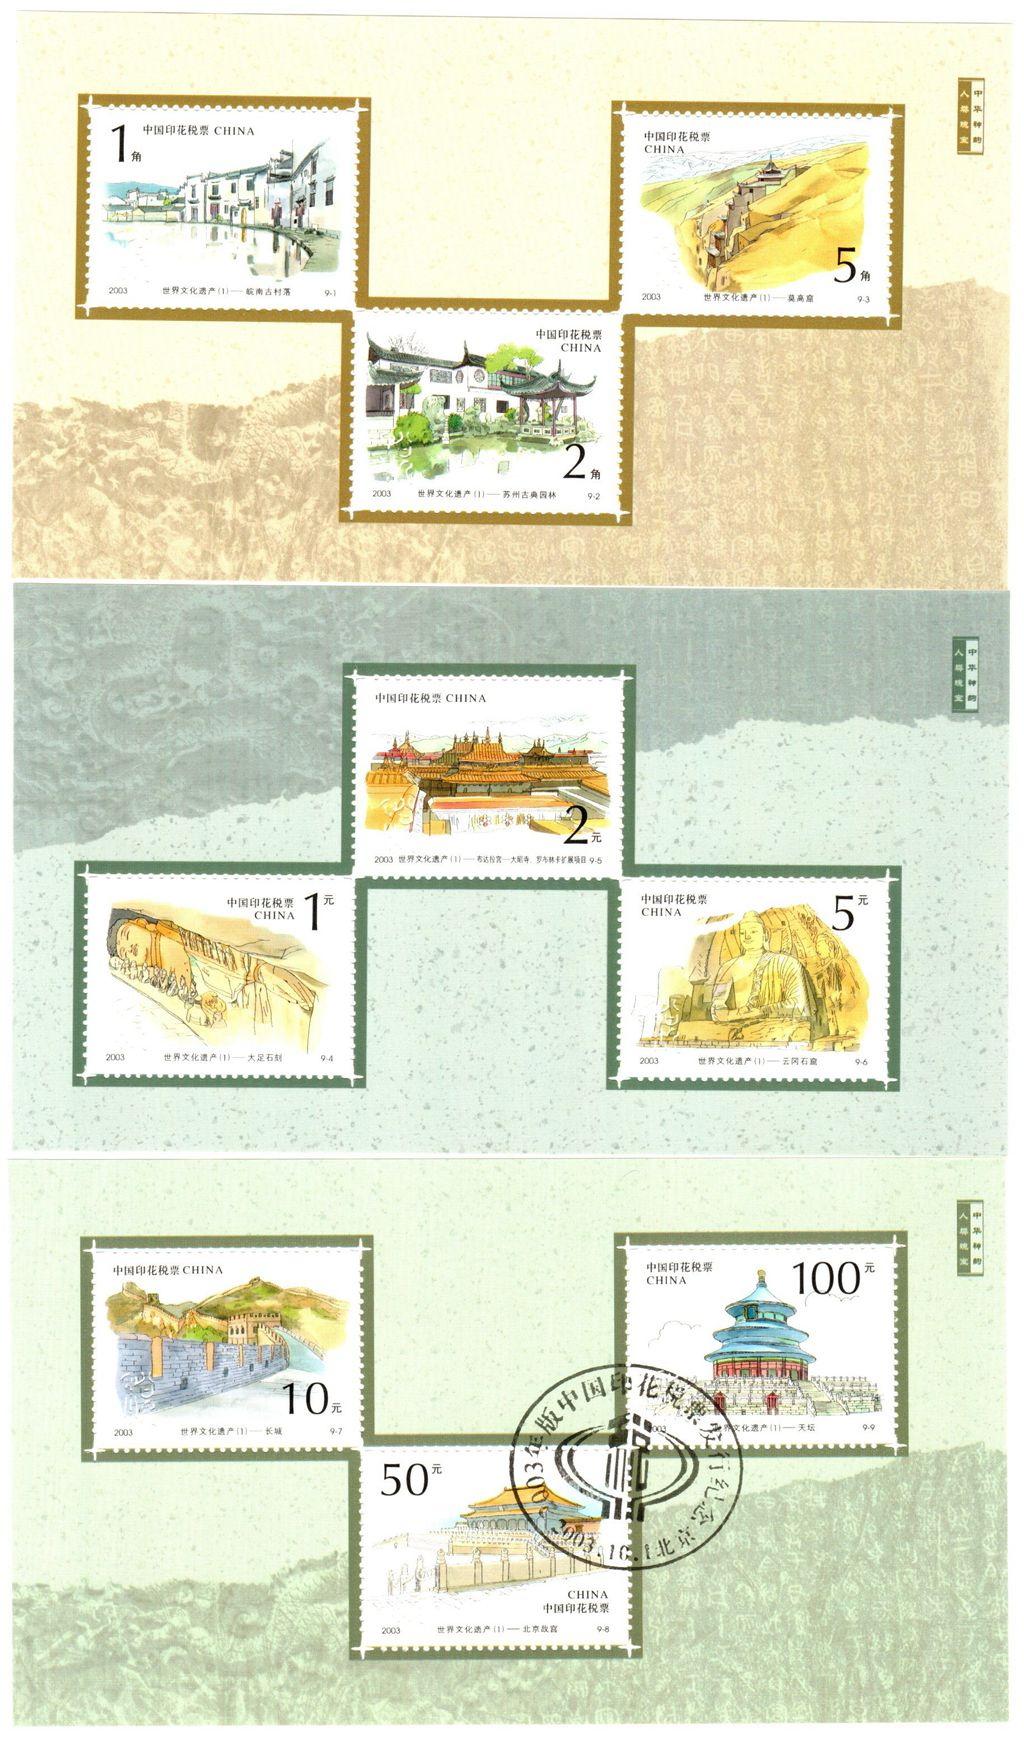 R2211, P.R.China Revenue Stamps, 2003, Culture Heritage,Stamp Sheets